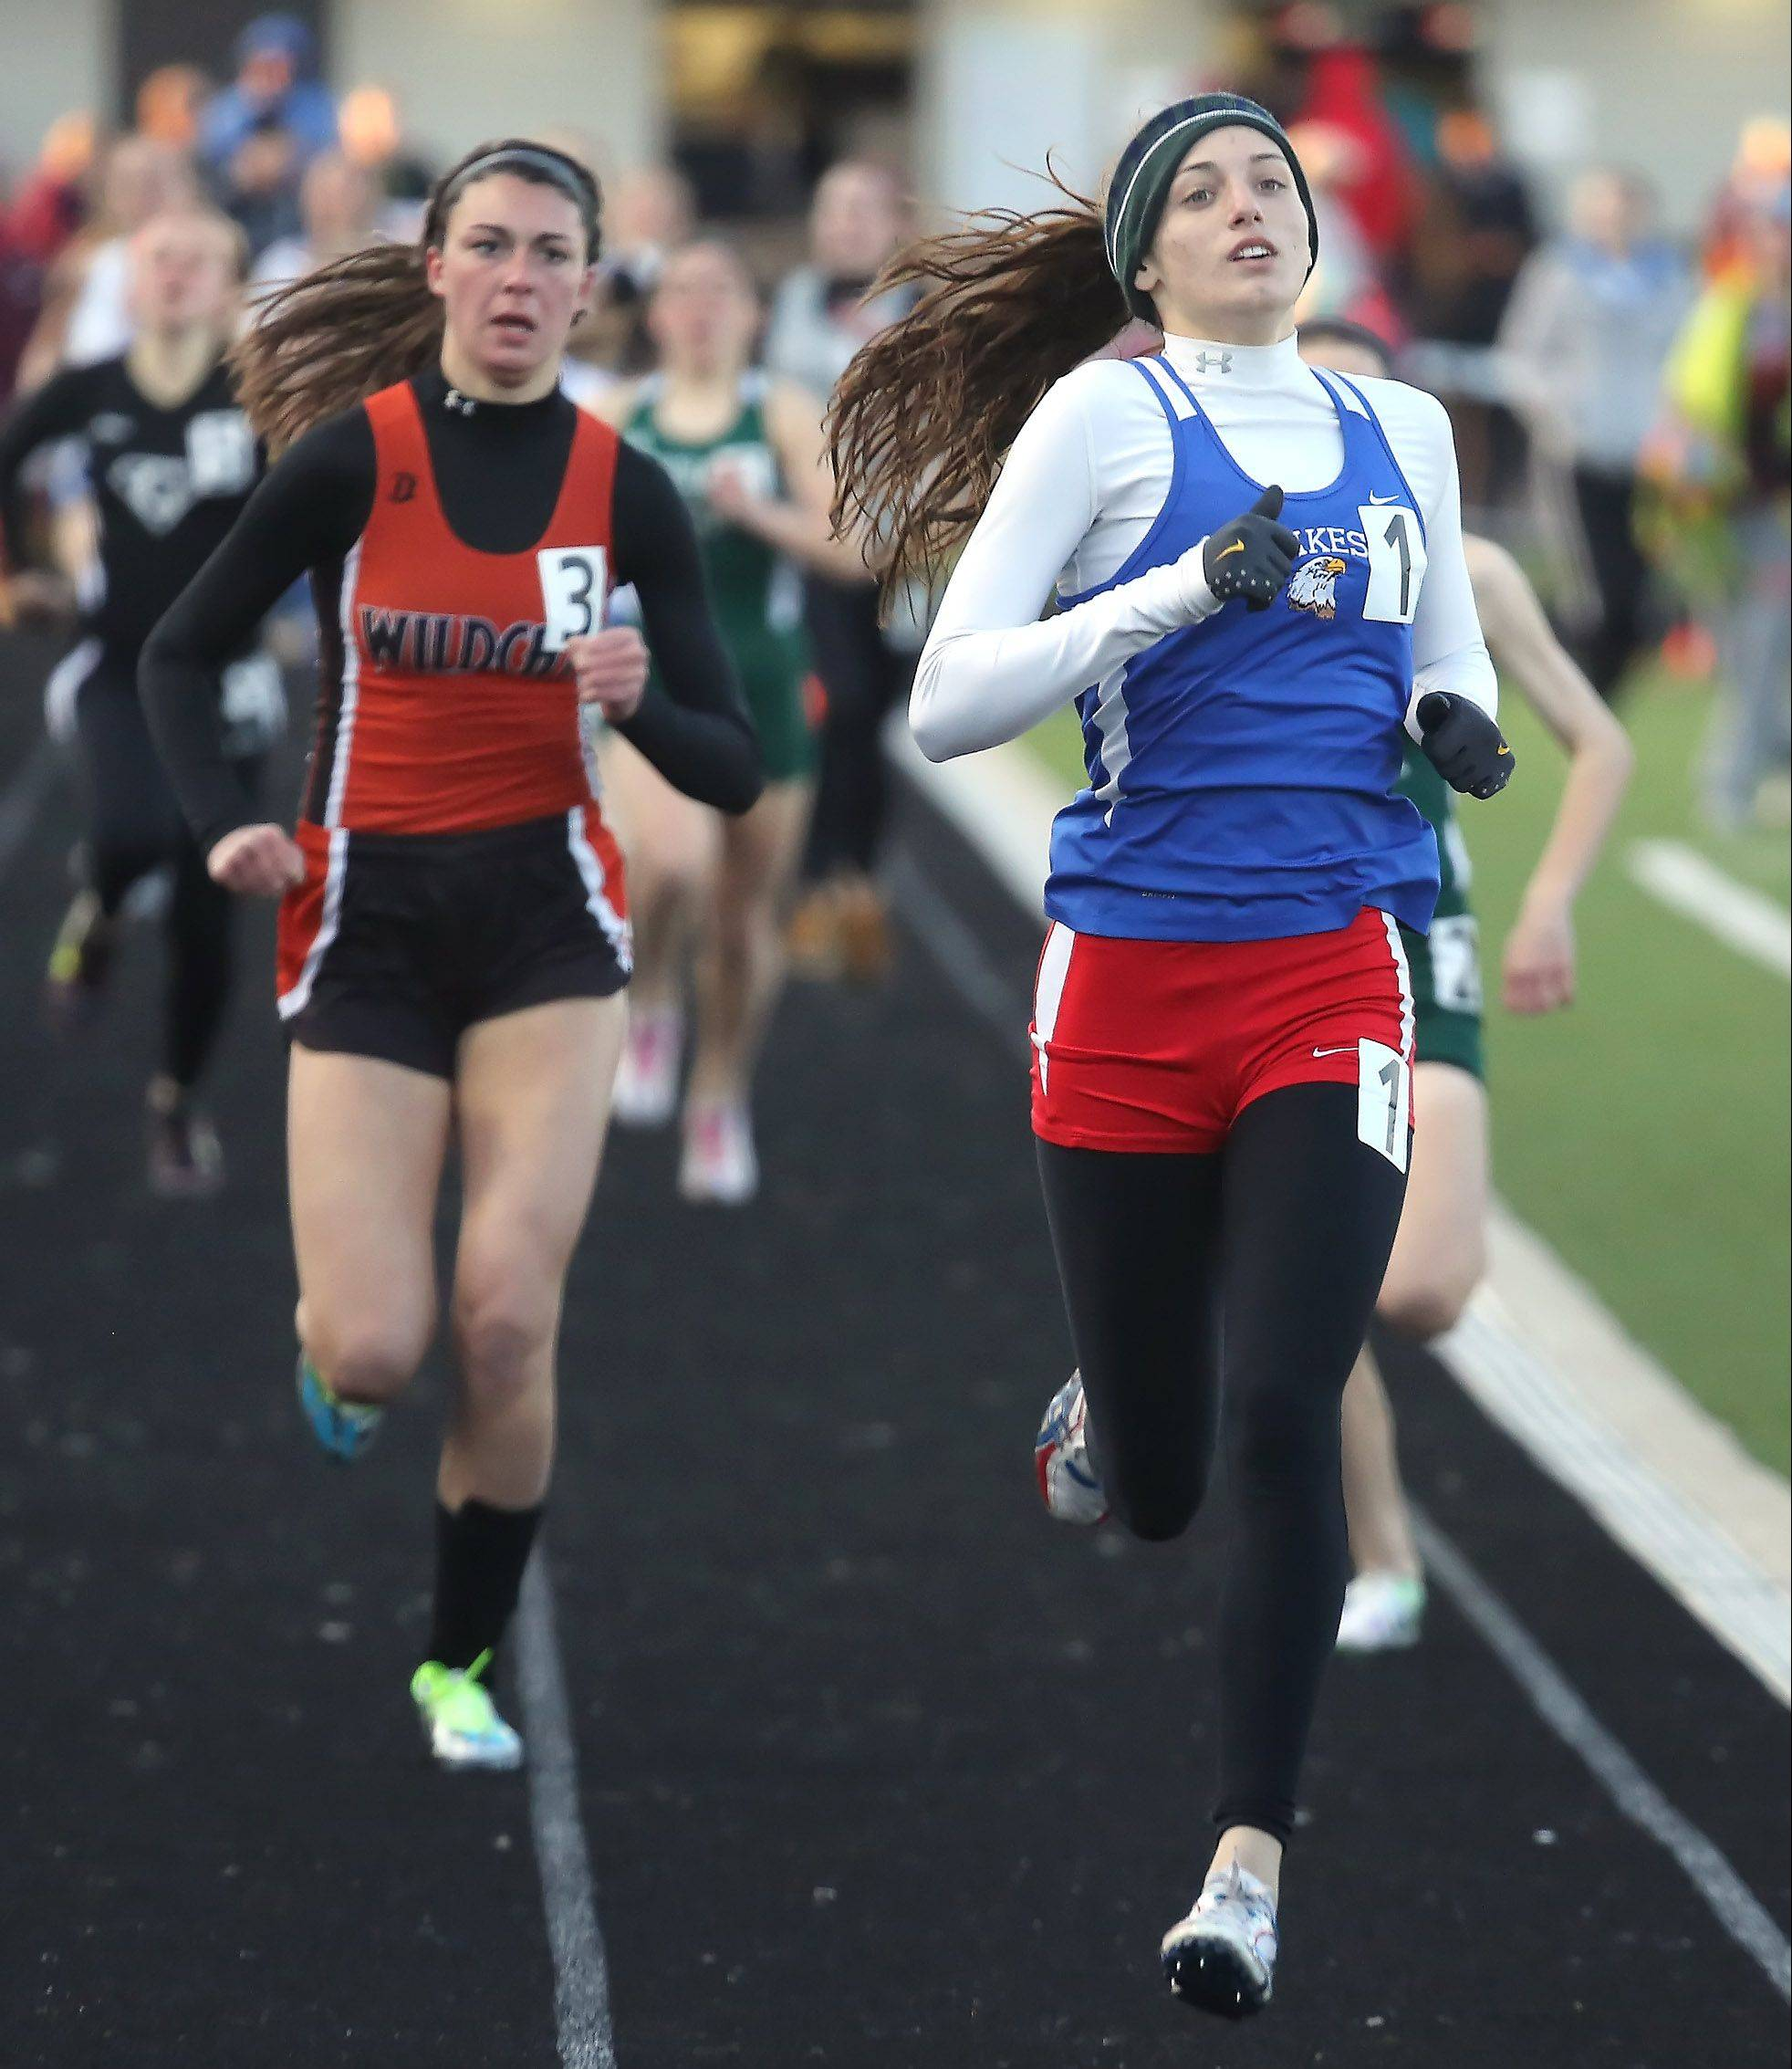 Lakes runner Danielle Griesbaum, right, finishes first with Libertyville's Carly Stewart coming in second in the 800 run during the Lake County meet Thursday at Grayslake North.